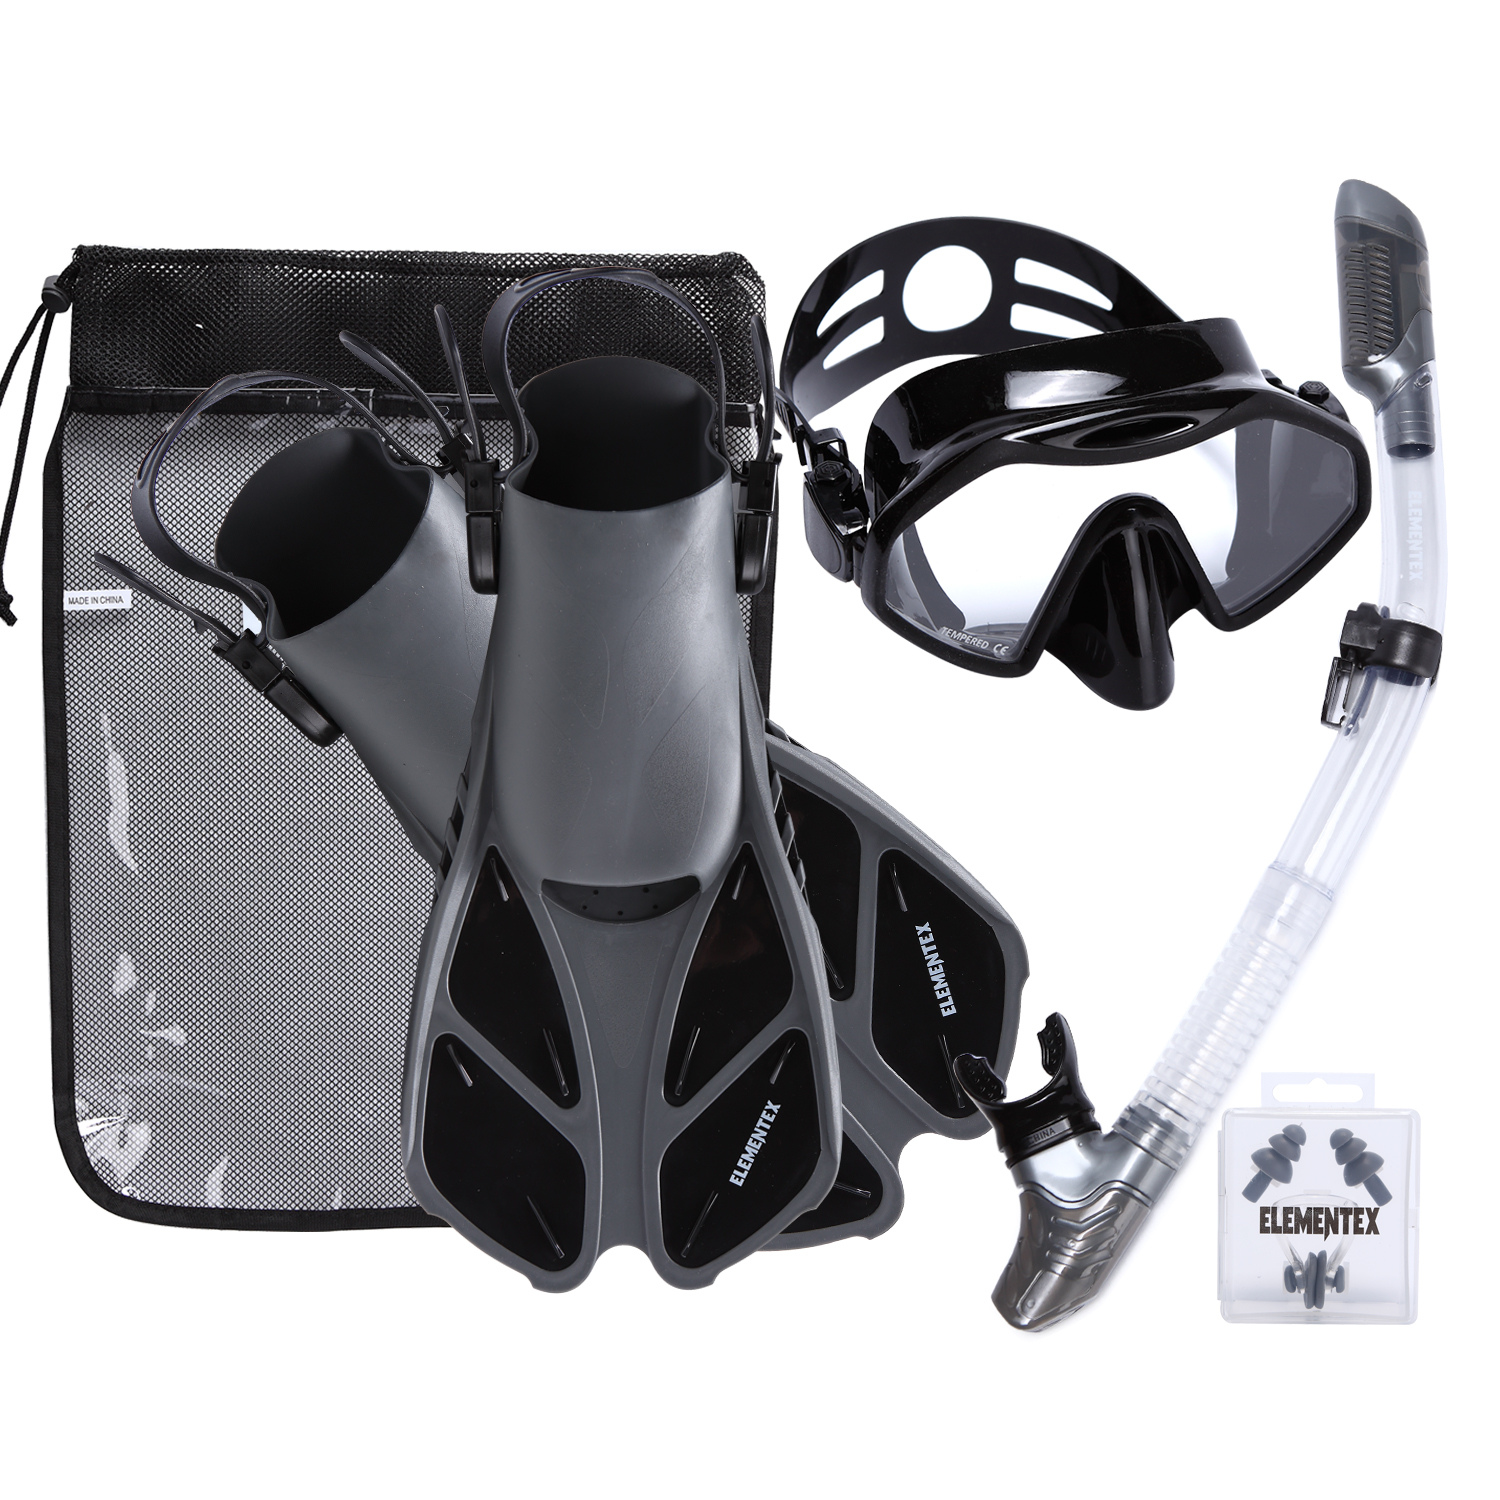 ELEMENTEX Scuba Diving Mask and Dry Snorkel Set with Trek Fins - Large / Black